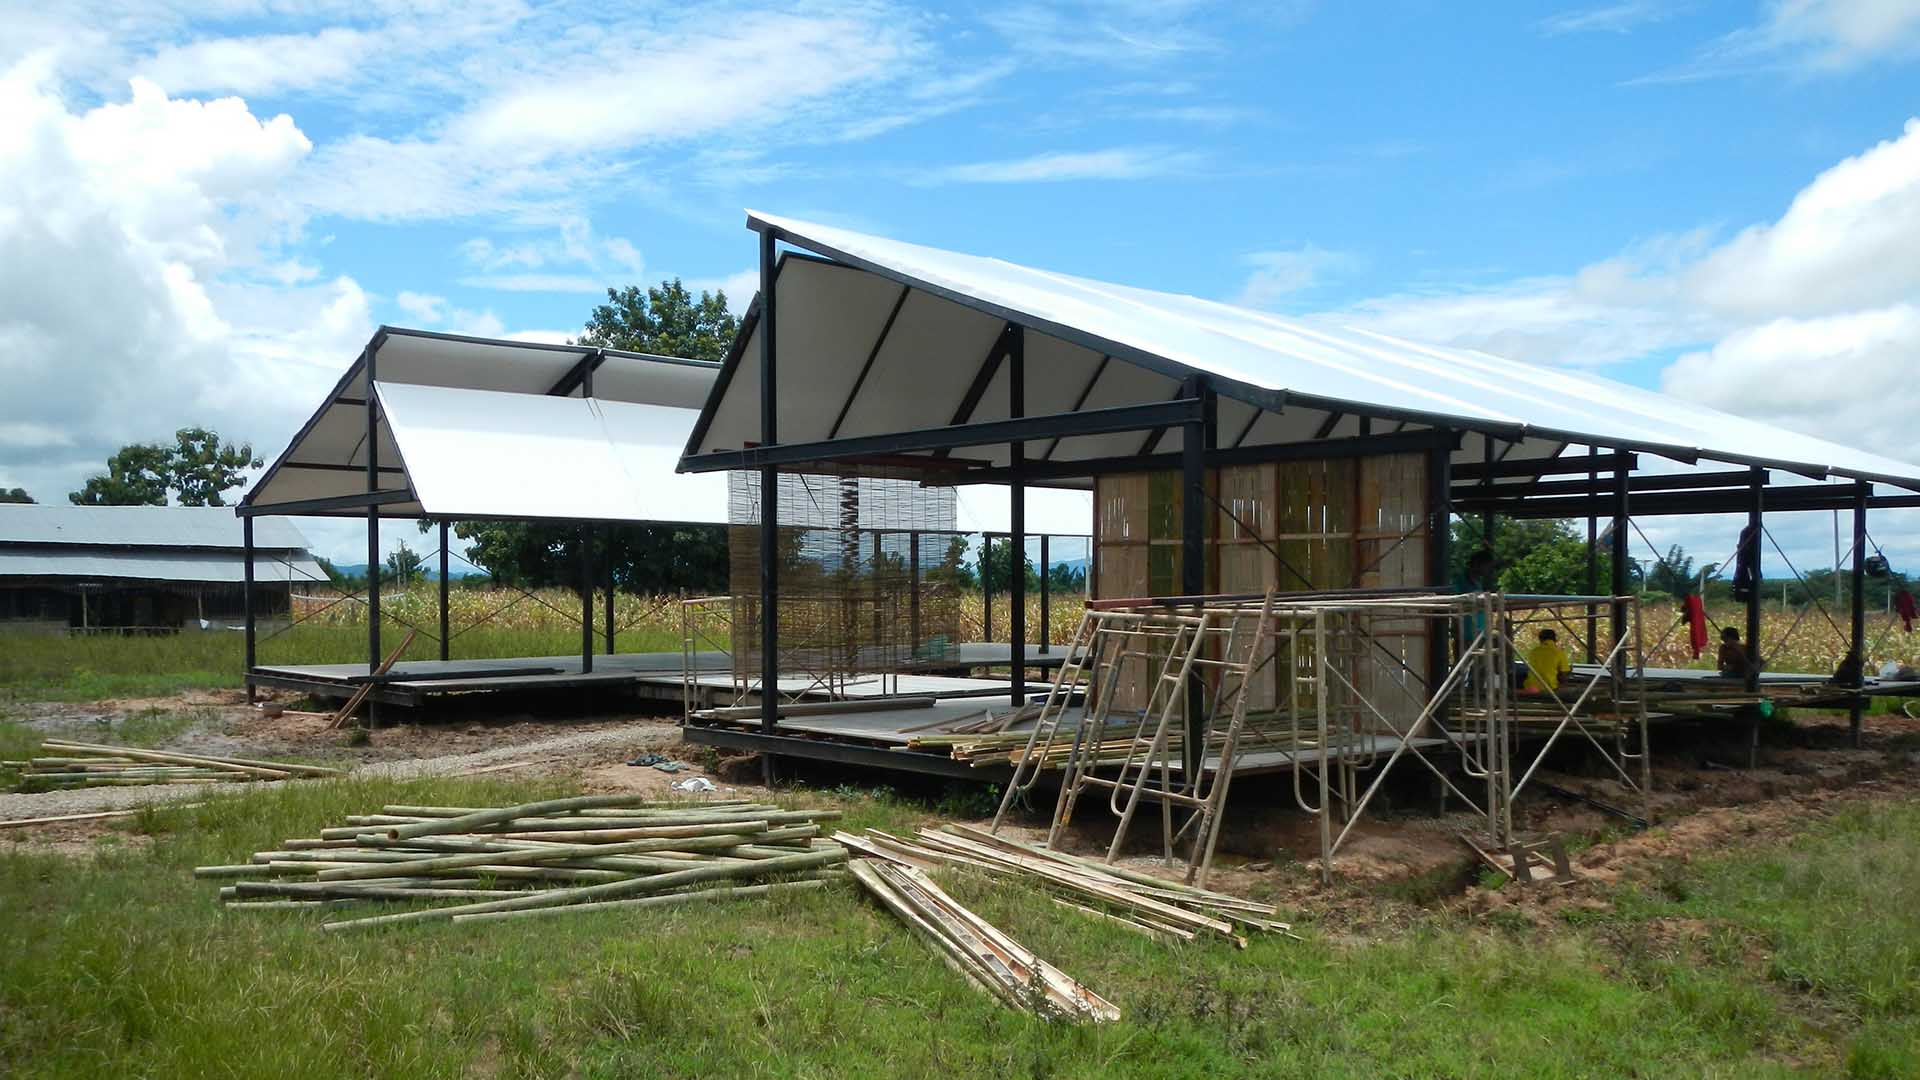 Moving School's modular building is comprised of a skeletal steel frame and bamboo wall panels